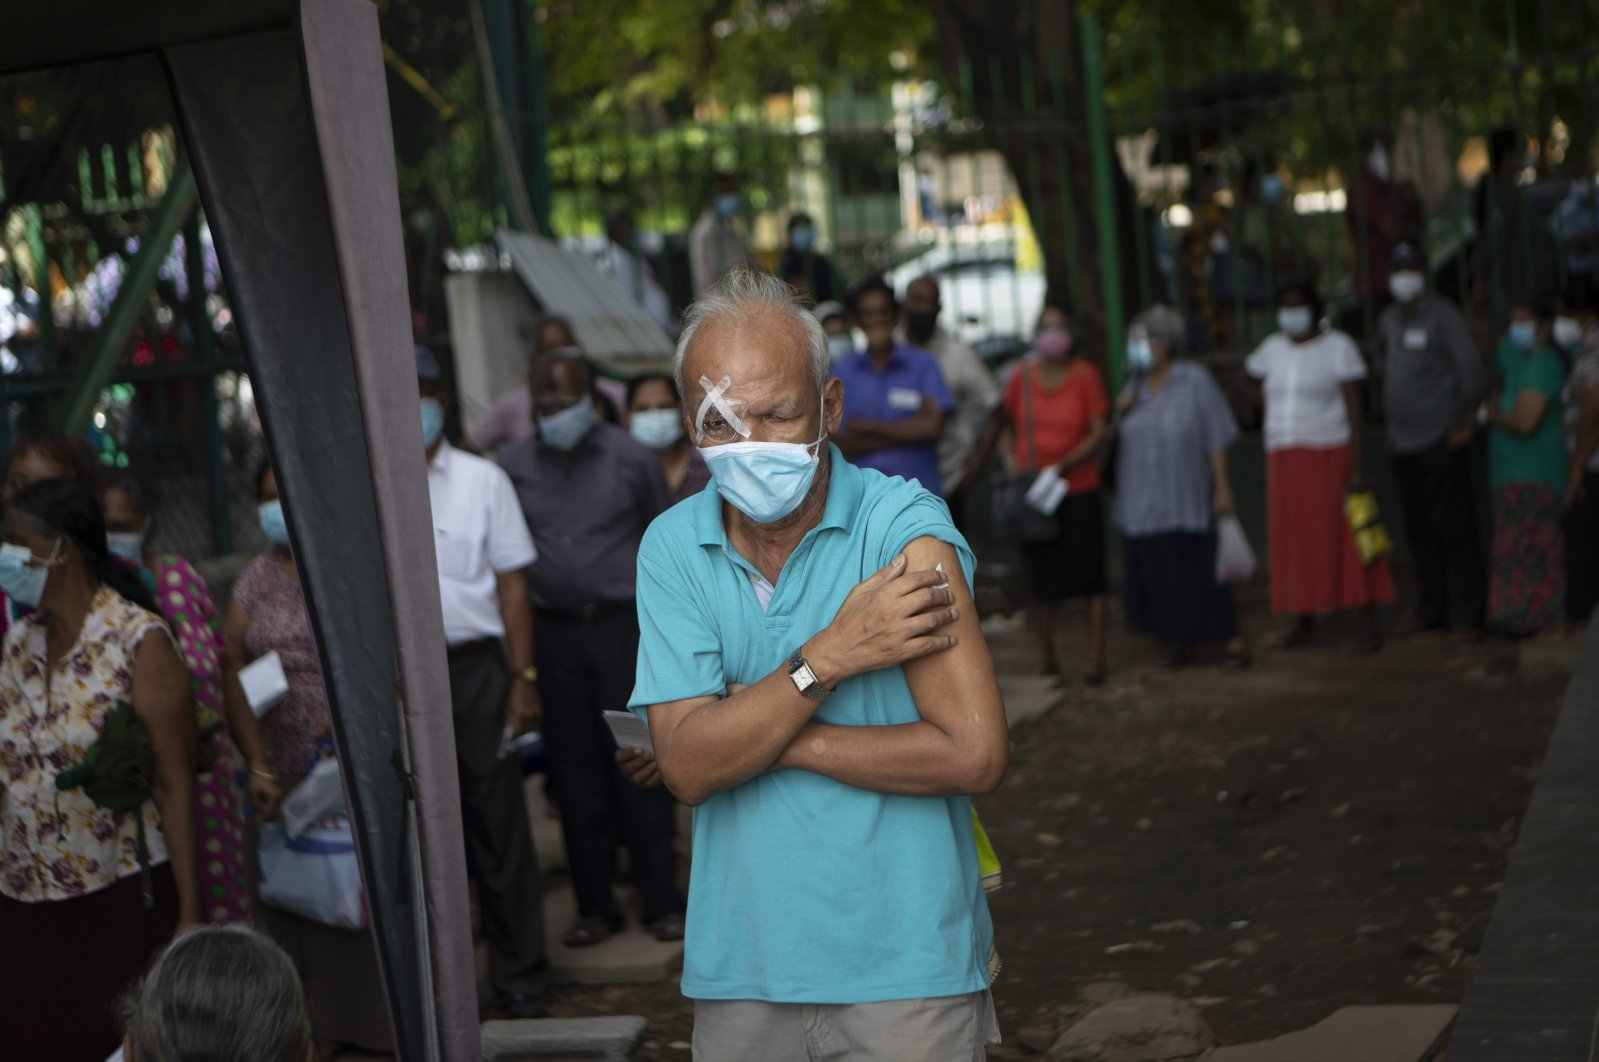 An elderly Sri Lankan holds his arm after receiving a dose of Pfizer COVID-19 vaccine at a vaccination site in Colombo, Sri Lanka, Wednesday, July 7, 2021.  (AP Photo)